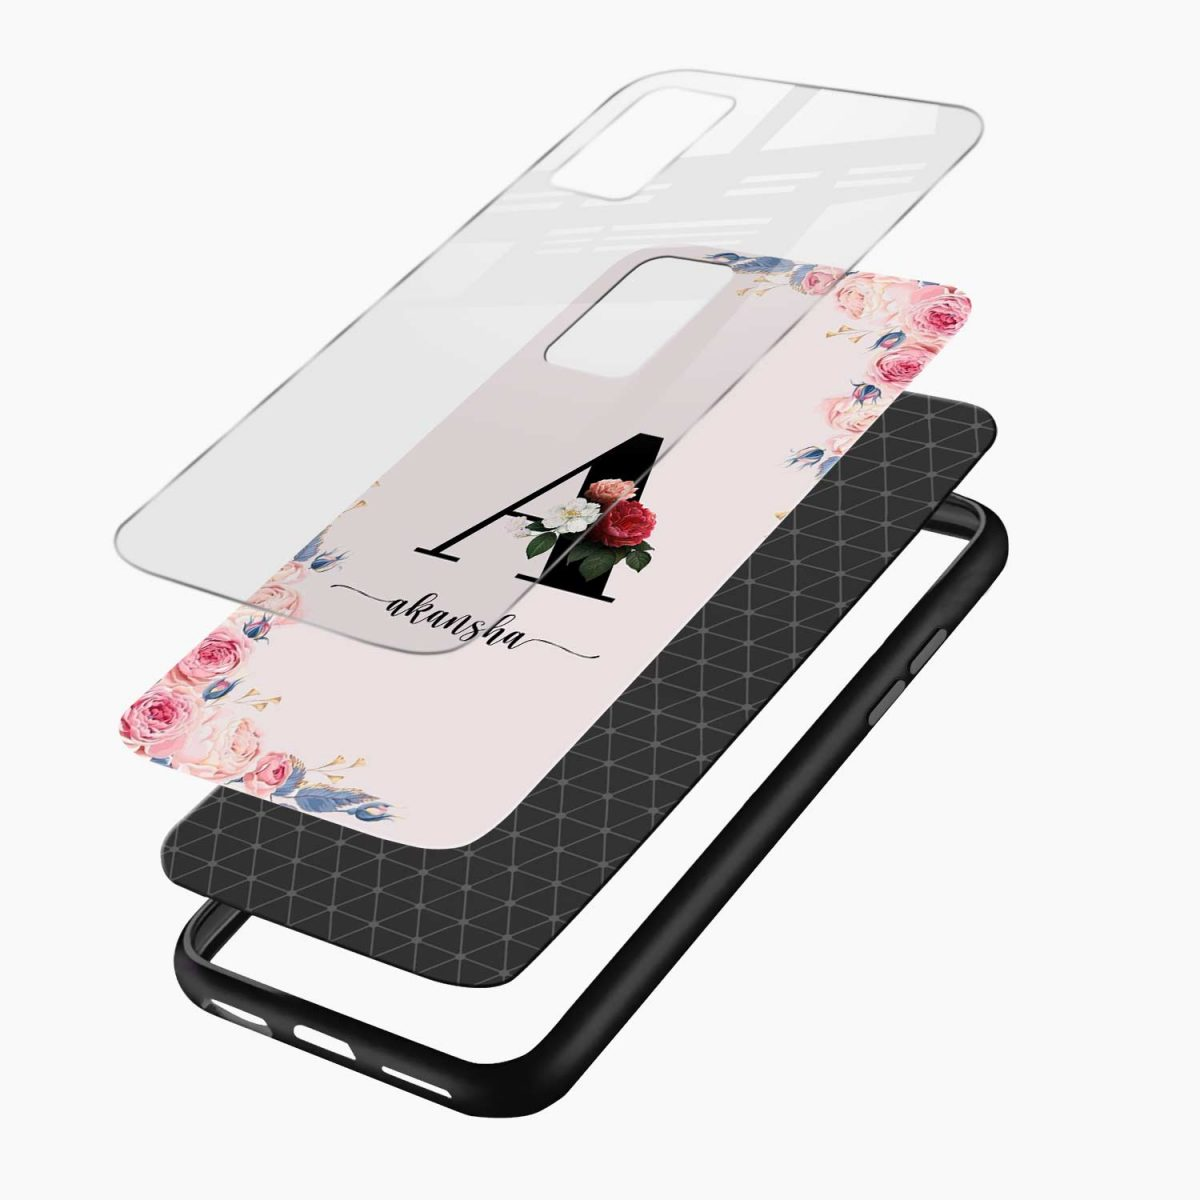 floral name personalised layers view vivo v17 back cove